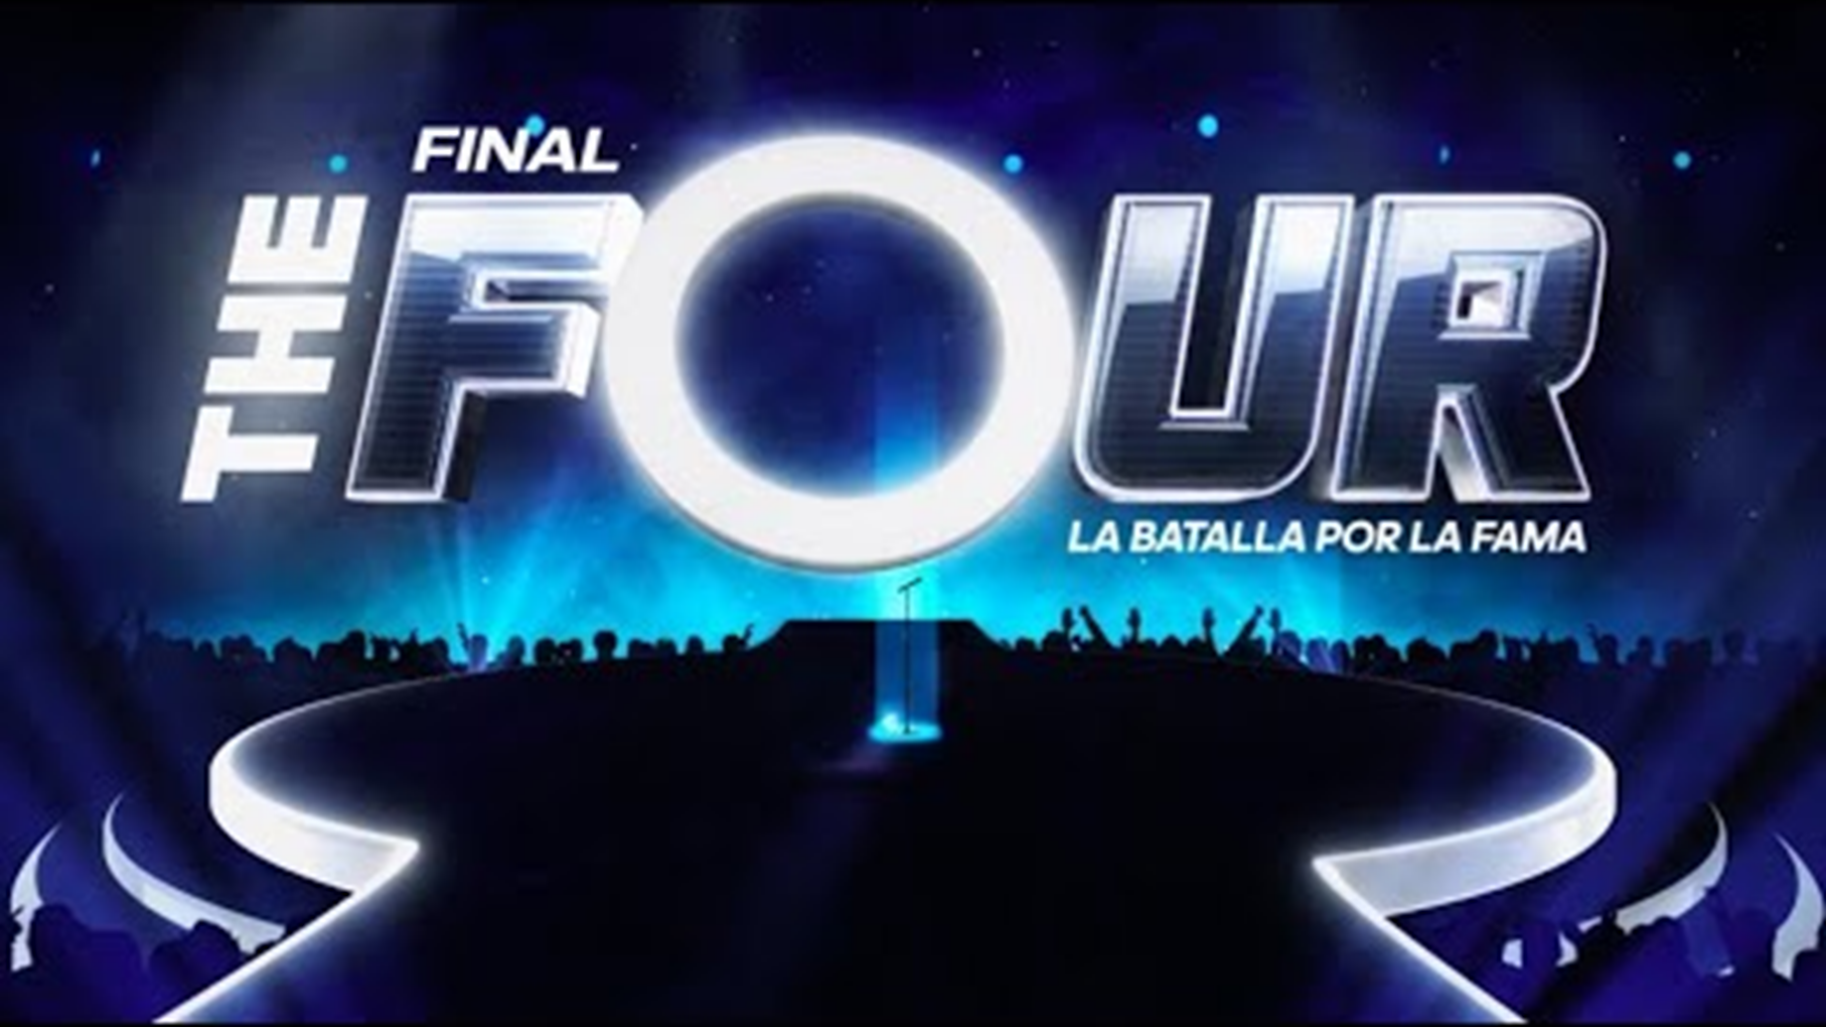 The Final Four (Panama)